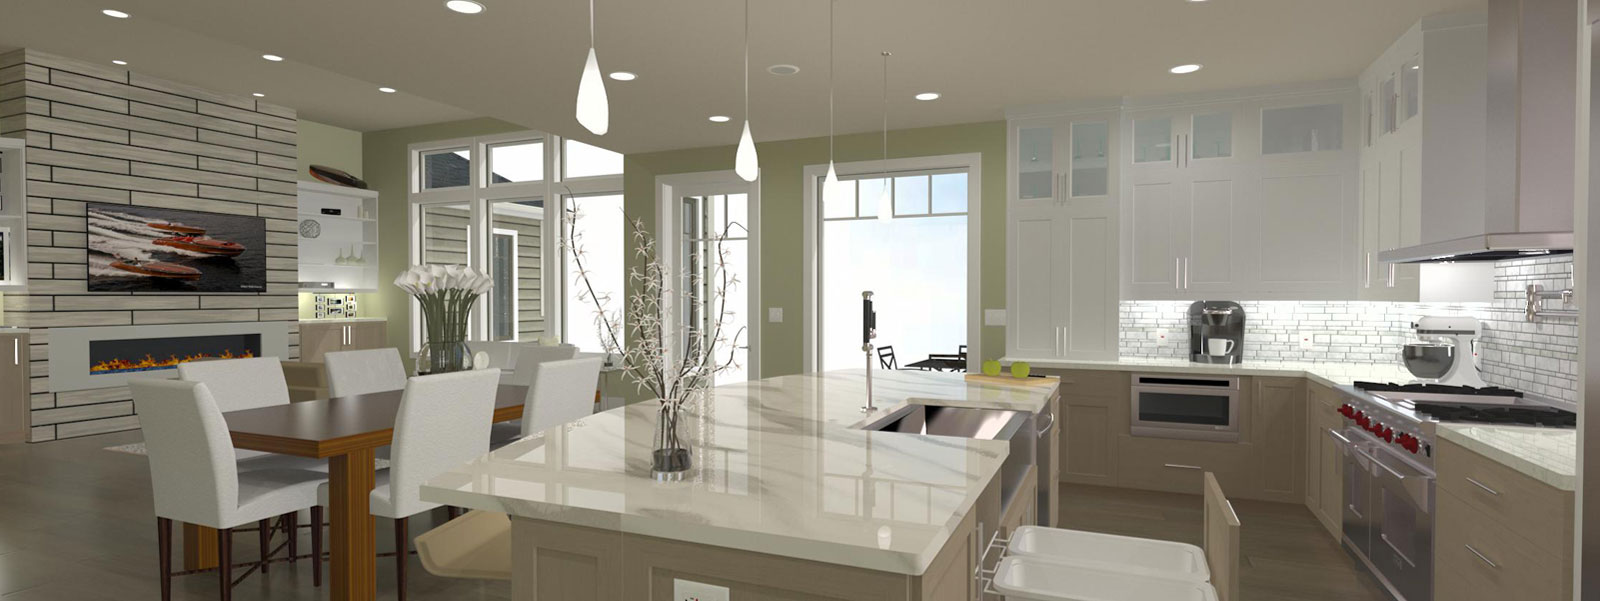 Kitchen Design Kitchen Design Software Chief Architect